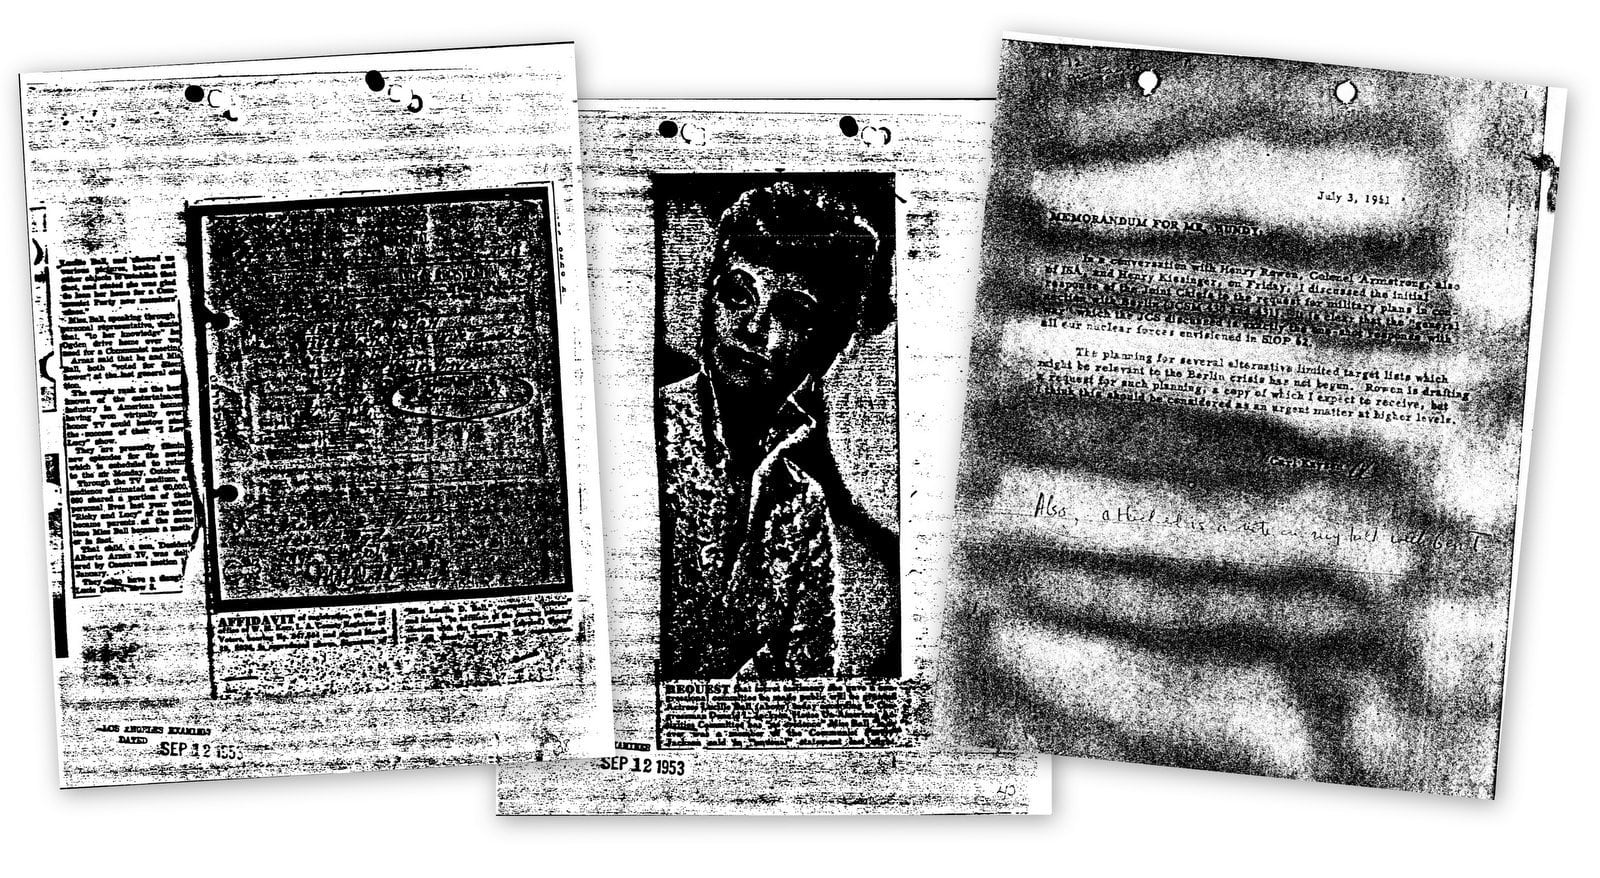 Old photocopied pages